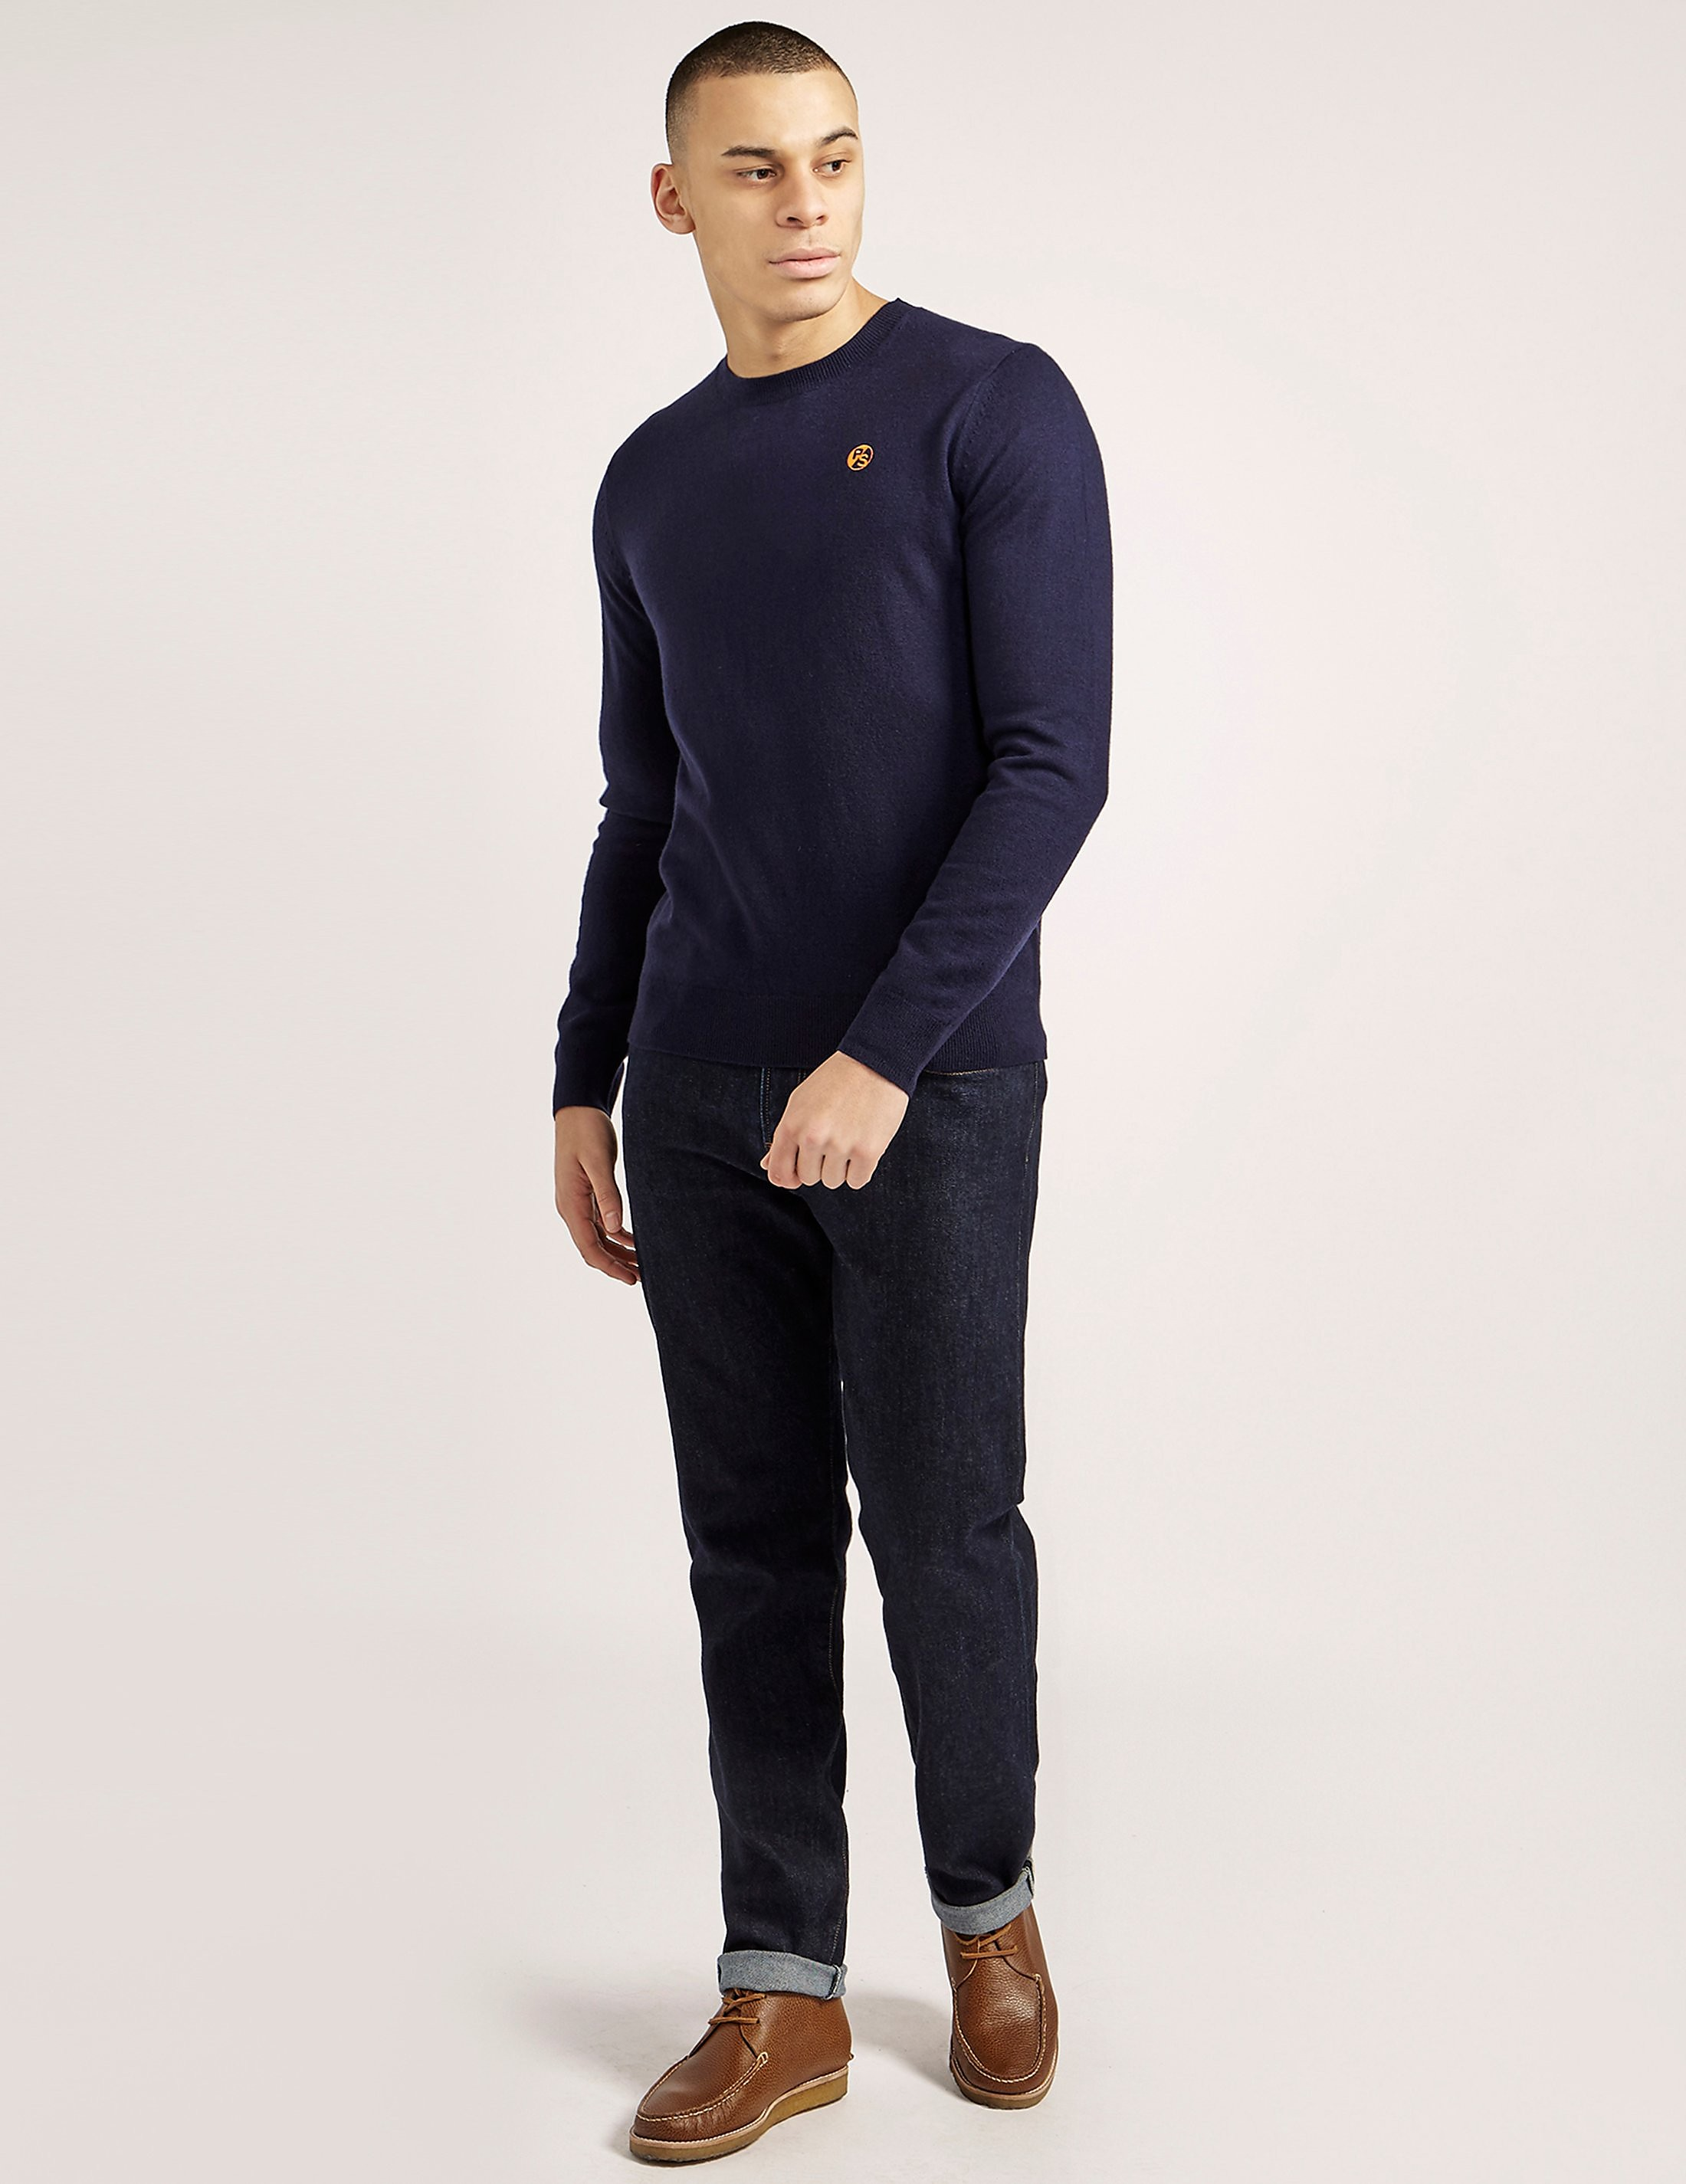 Paul Smith Lambswool Crew Knit